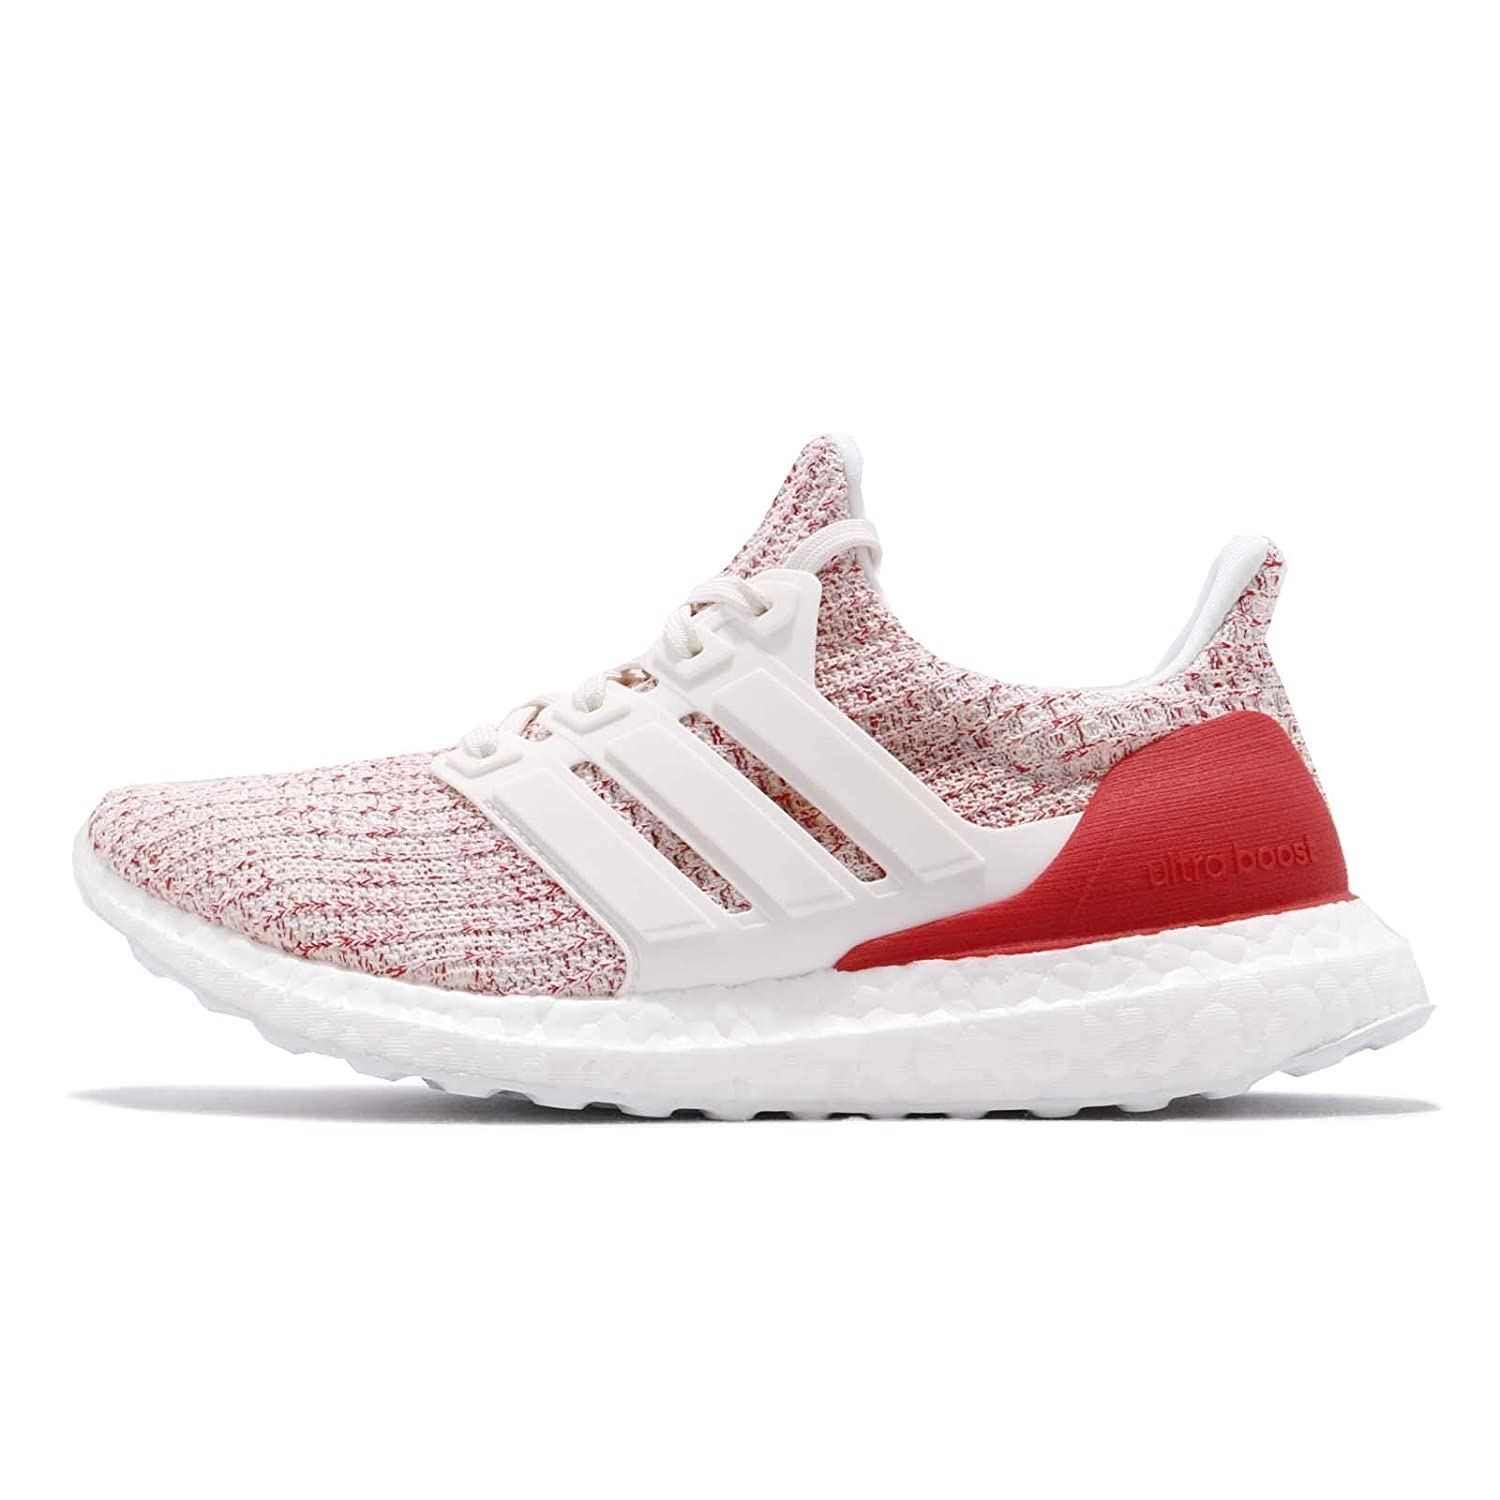 [アディダス] ウルトラブースト レディース ランニング シューズ UltraBOOST W DB3209 [並行輸入品] B07MJJDL61 CHALK WHITE / CHALK WHITE / ACTIVE RED 24.0 cm 24.0 cm|CHALK WHITE / CHALK WHITE / ACTIVE RED